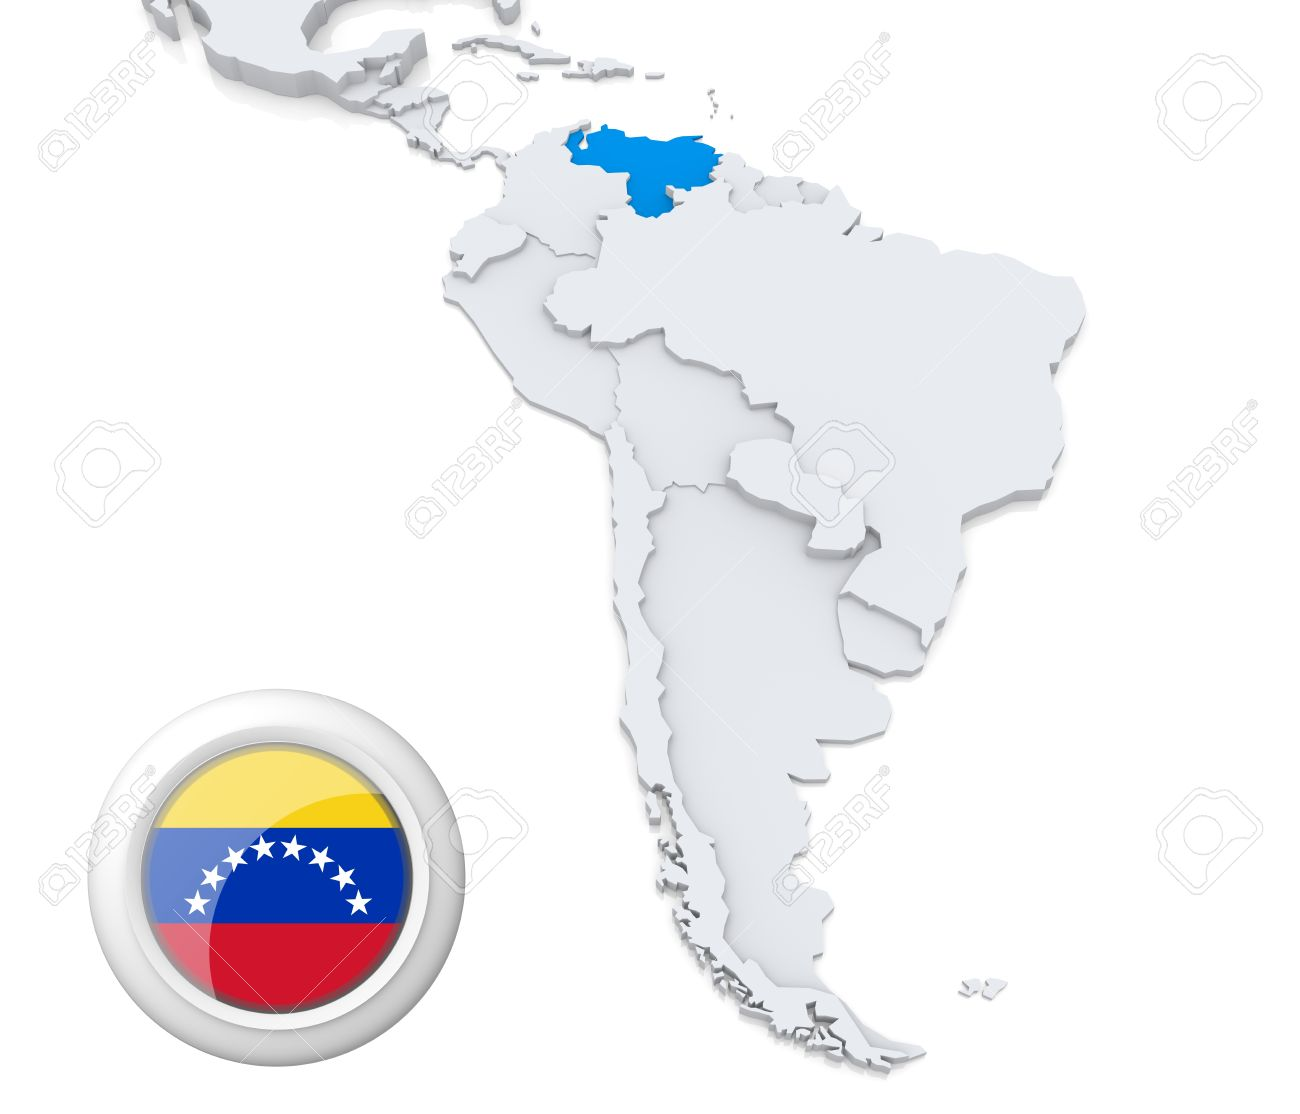 Venezuela is located on the northeast coast of South America